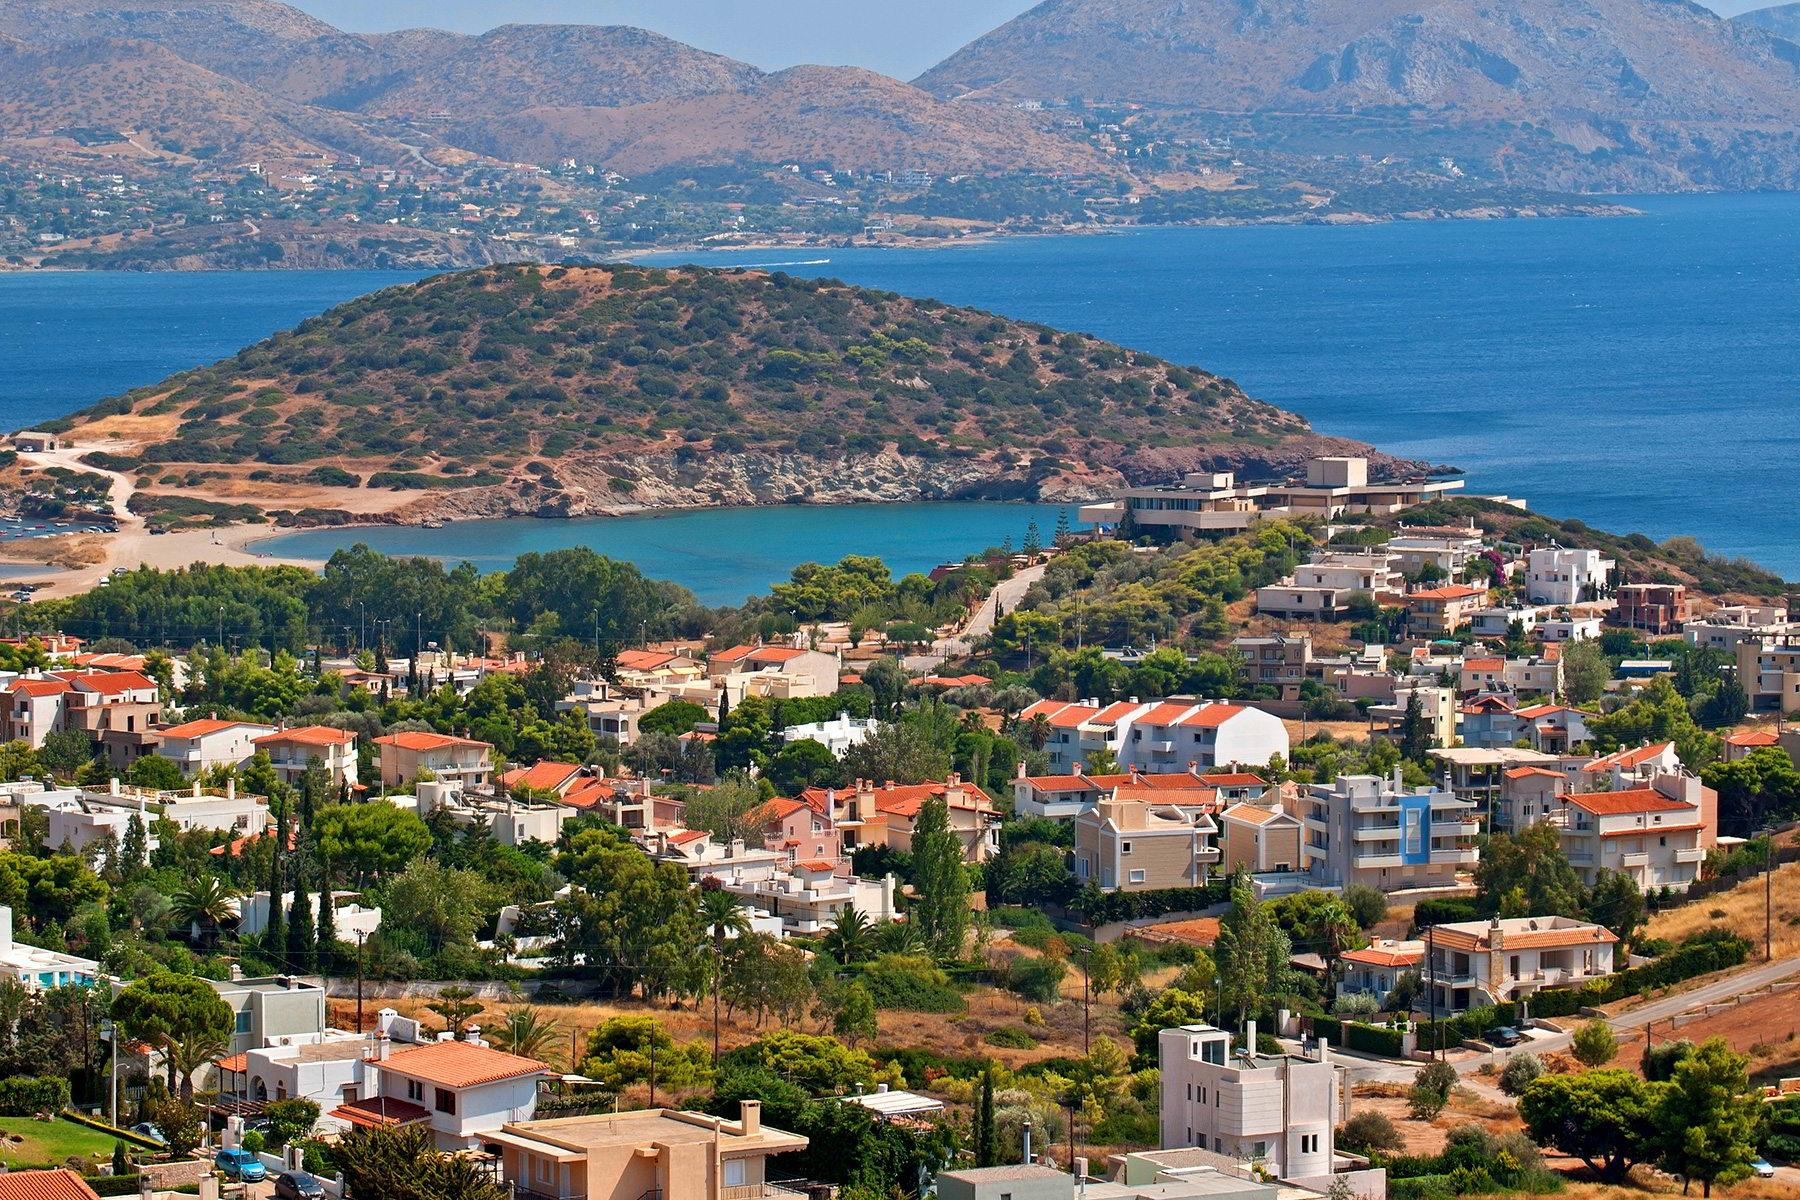 The Athens Riviera is the large coastal area in the southern suburbs of Athens from Piraeus to the tip of Sounio.